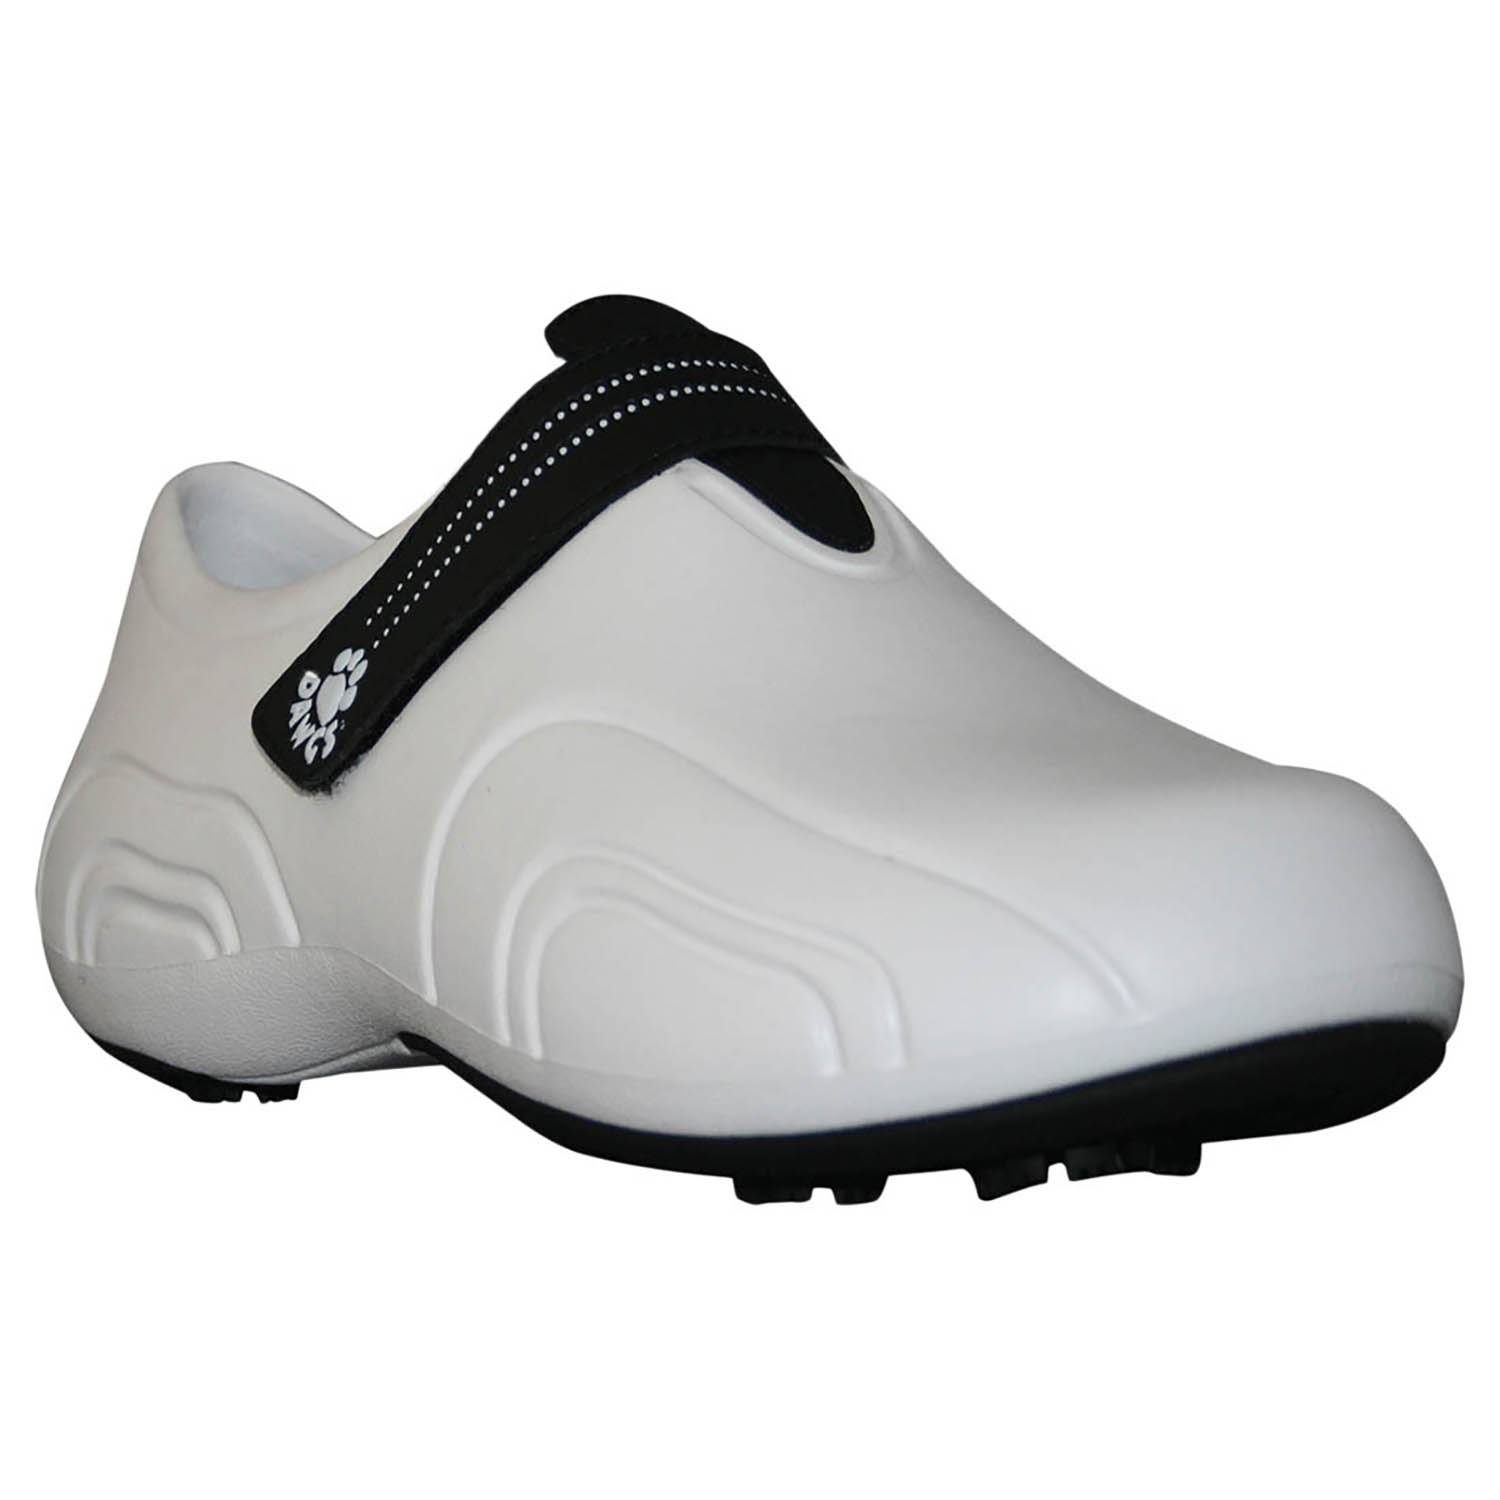 Image of Dawgs Dawgs Men's Ultralite Golf Shoes